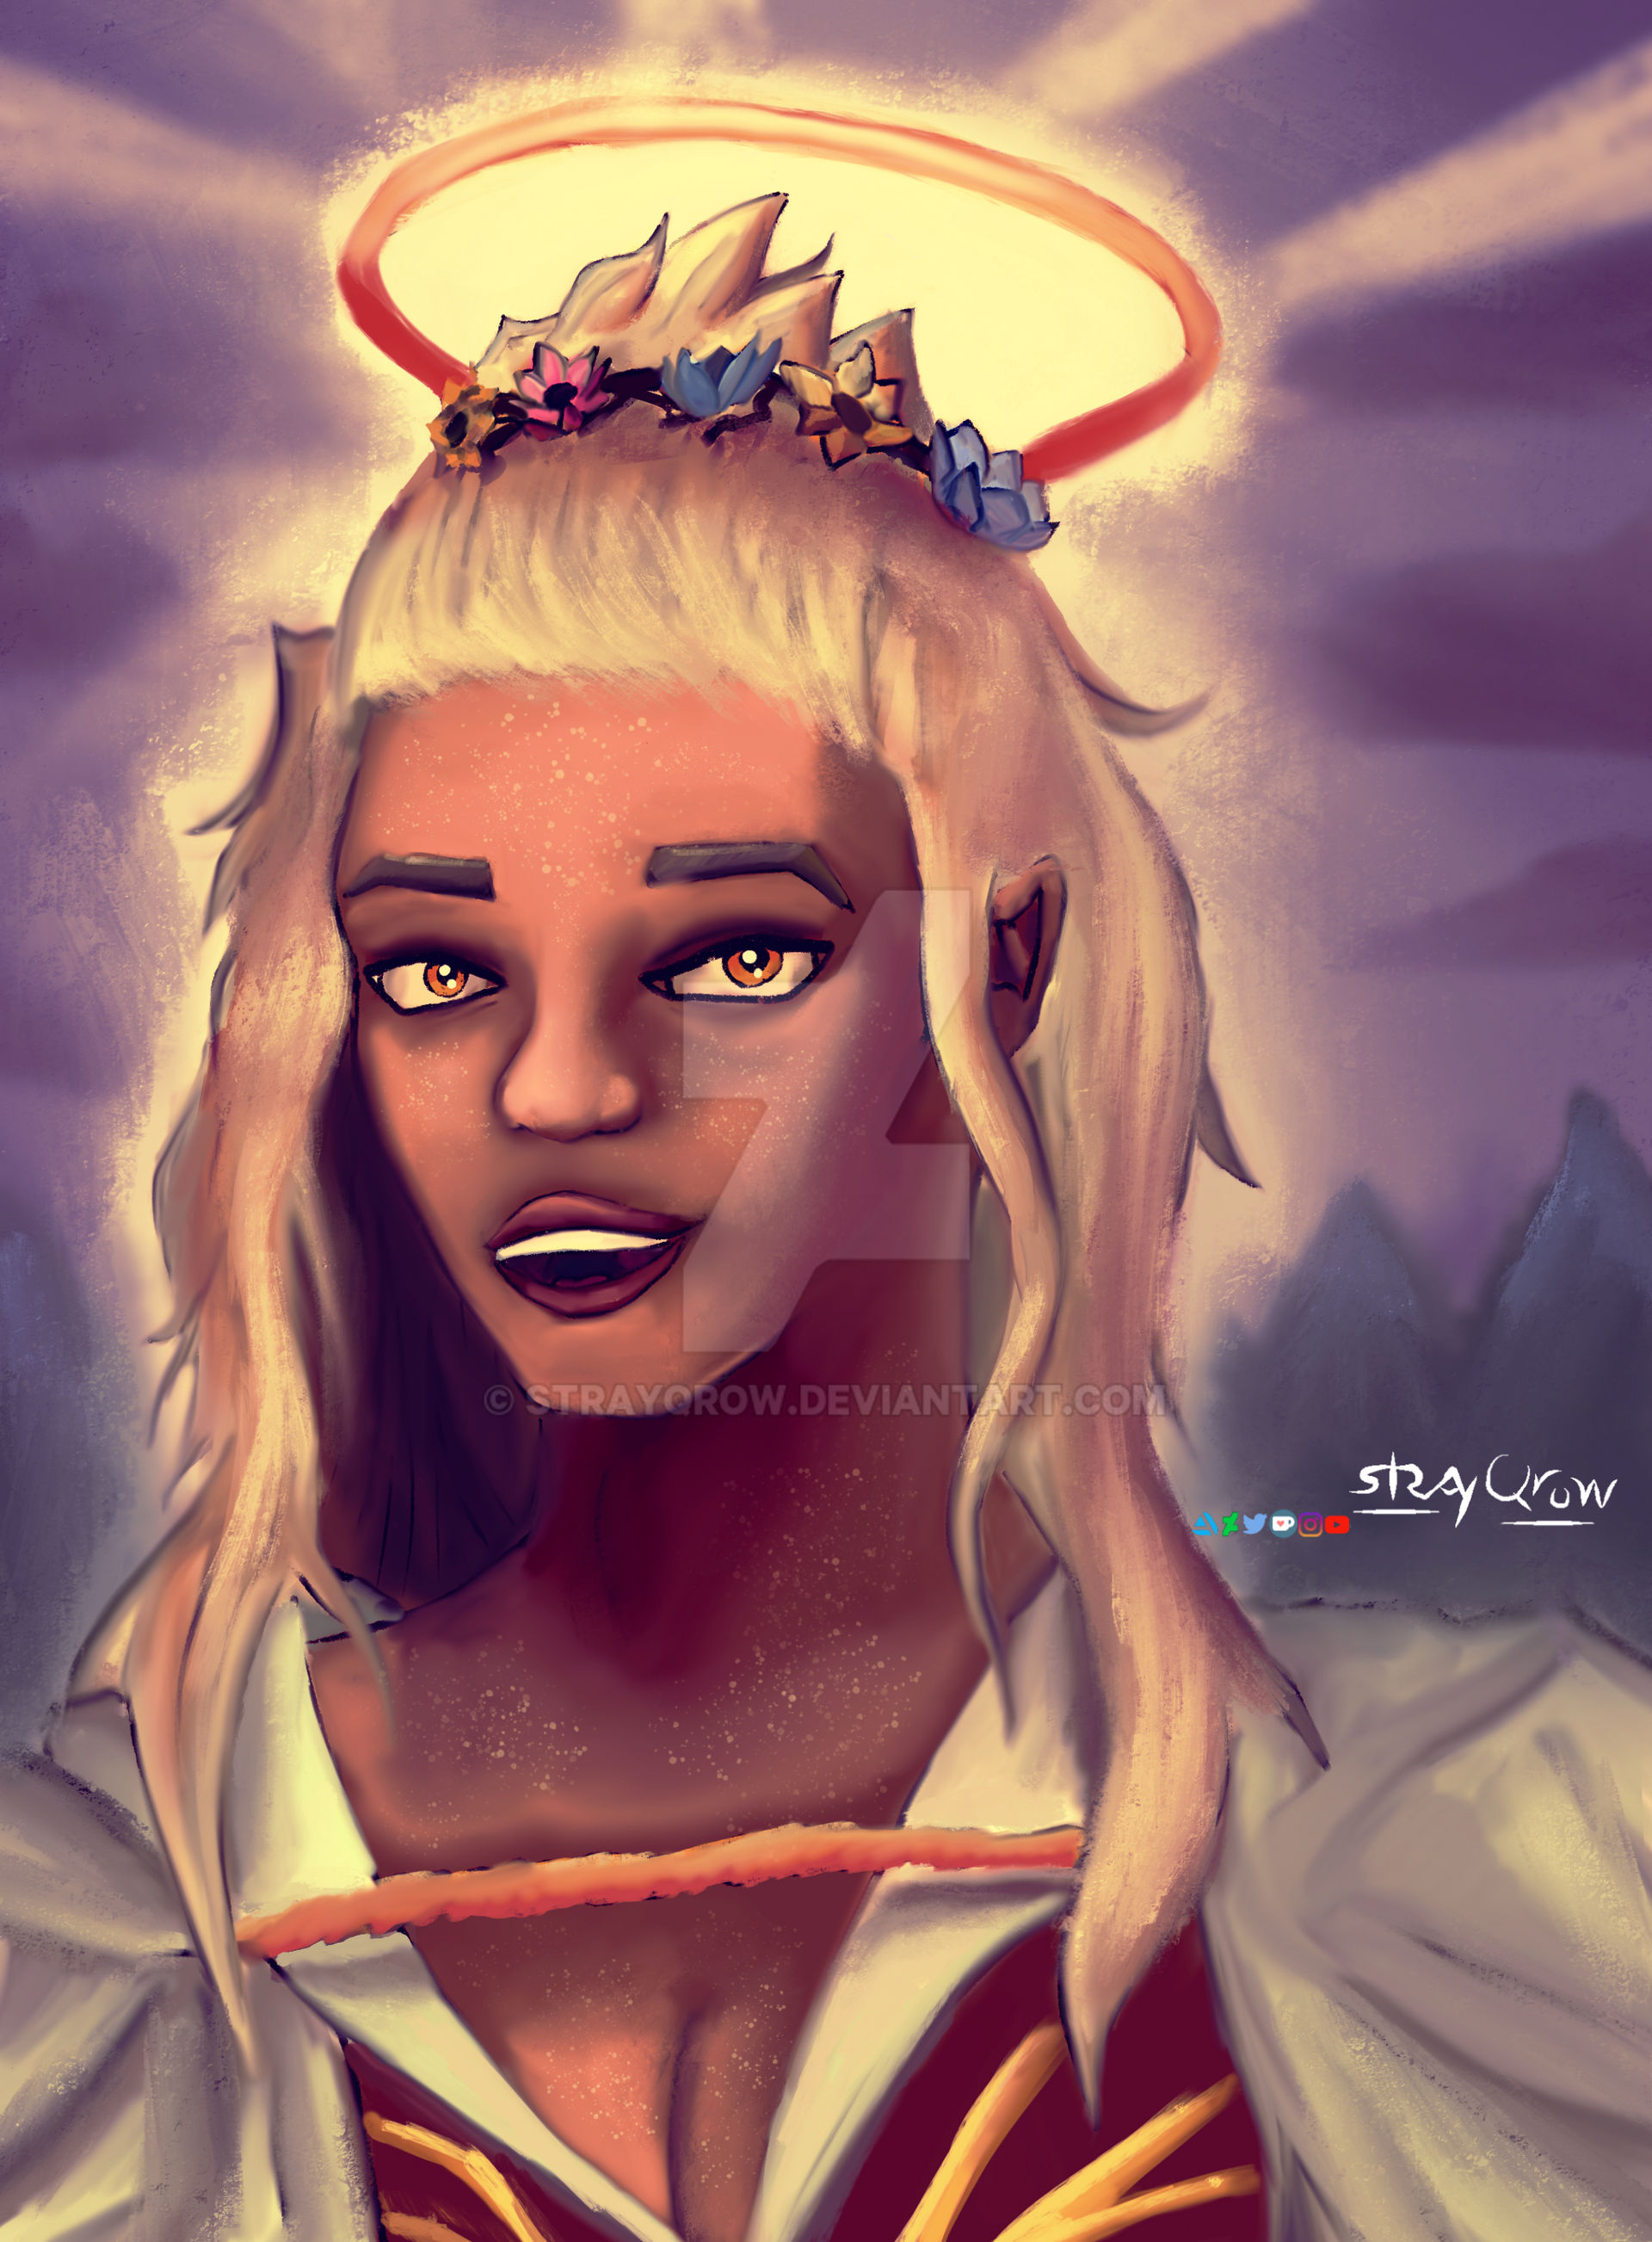 Critical Role Reani Speedpaint By Strayqrow On Deviantart Magical, meaningful items you can't find anywhere else. deviantart